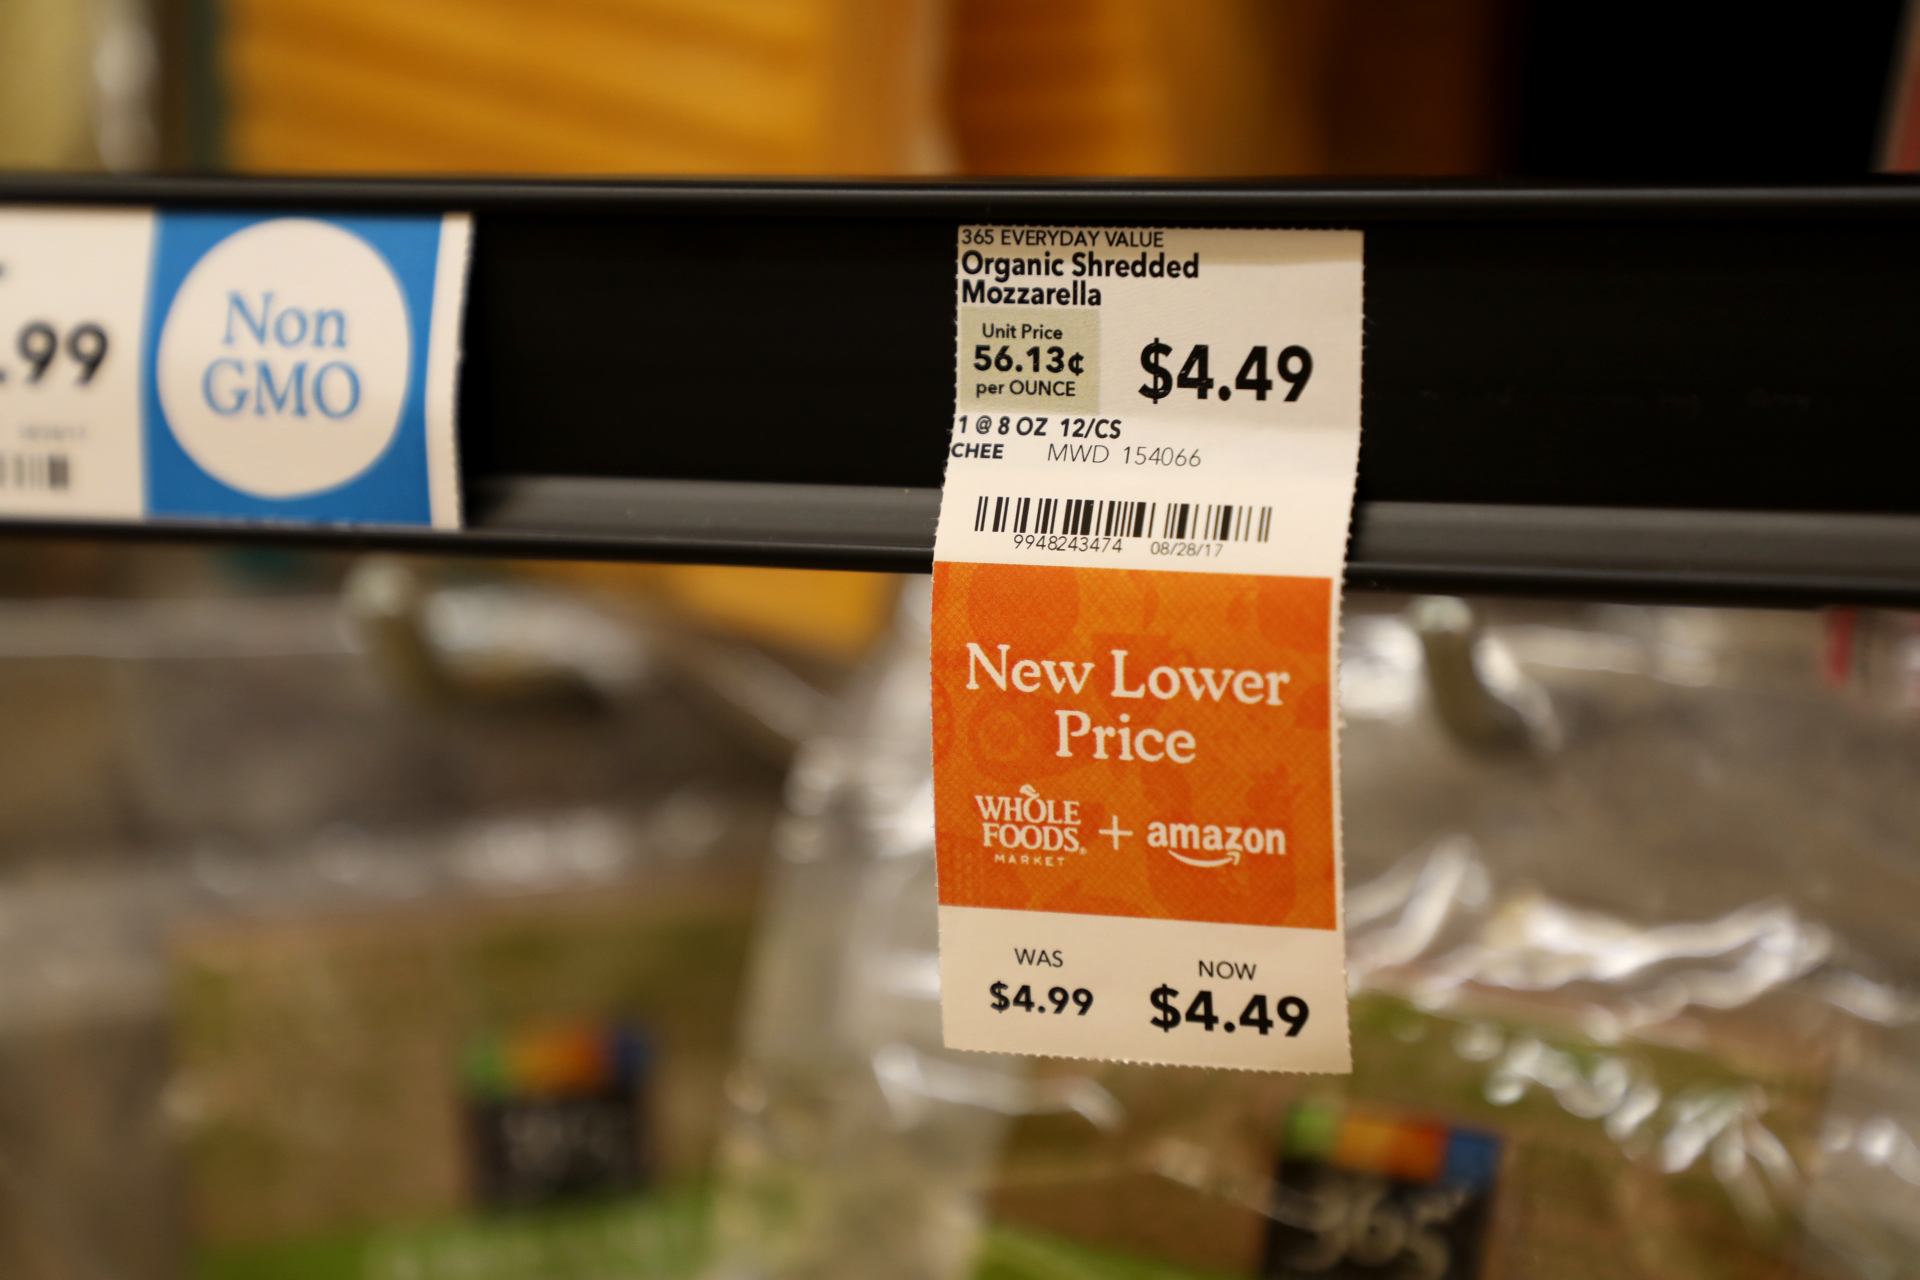 The prize of organic shredded mozzarella cheese also dropped a few cents after Amazon bought Whole Foods. (Andrew Gill/WBEZ)